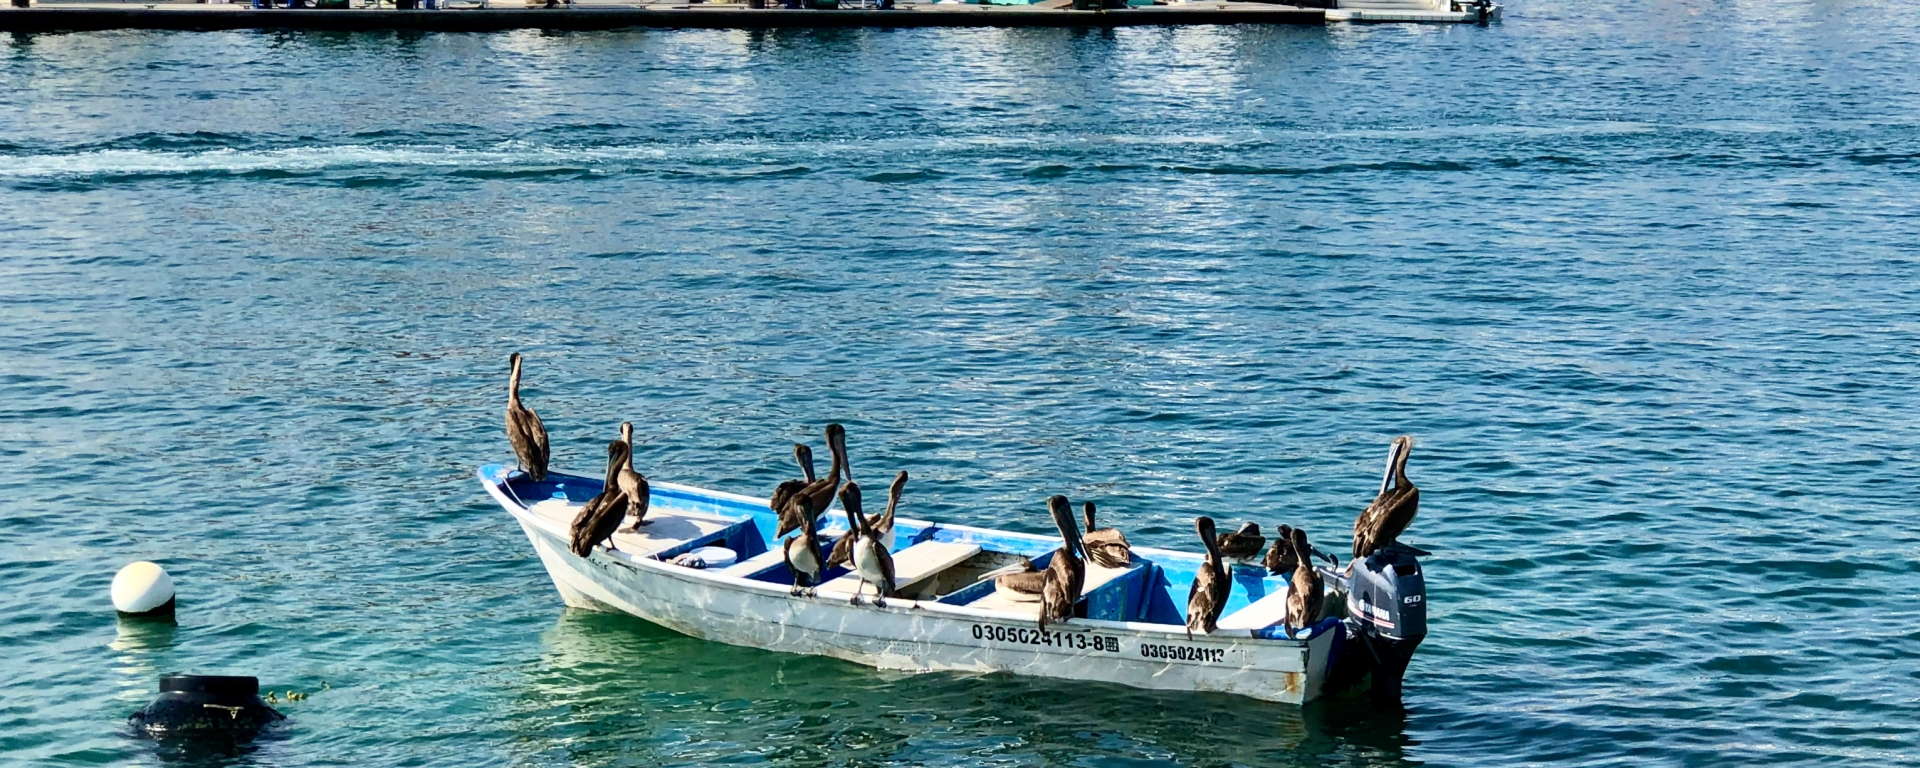 Seabirds on a boat in the cabo san lucas marina